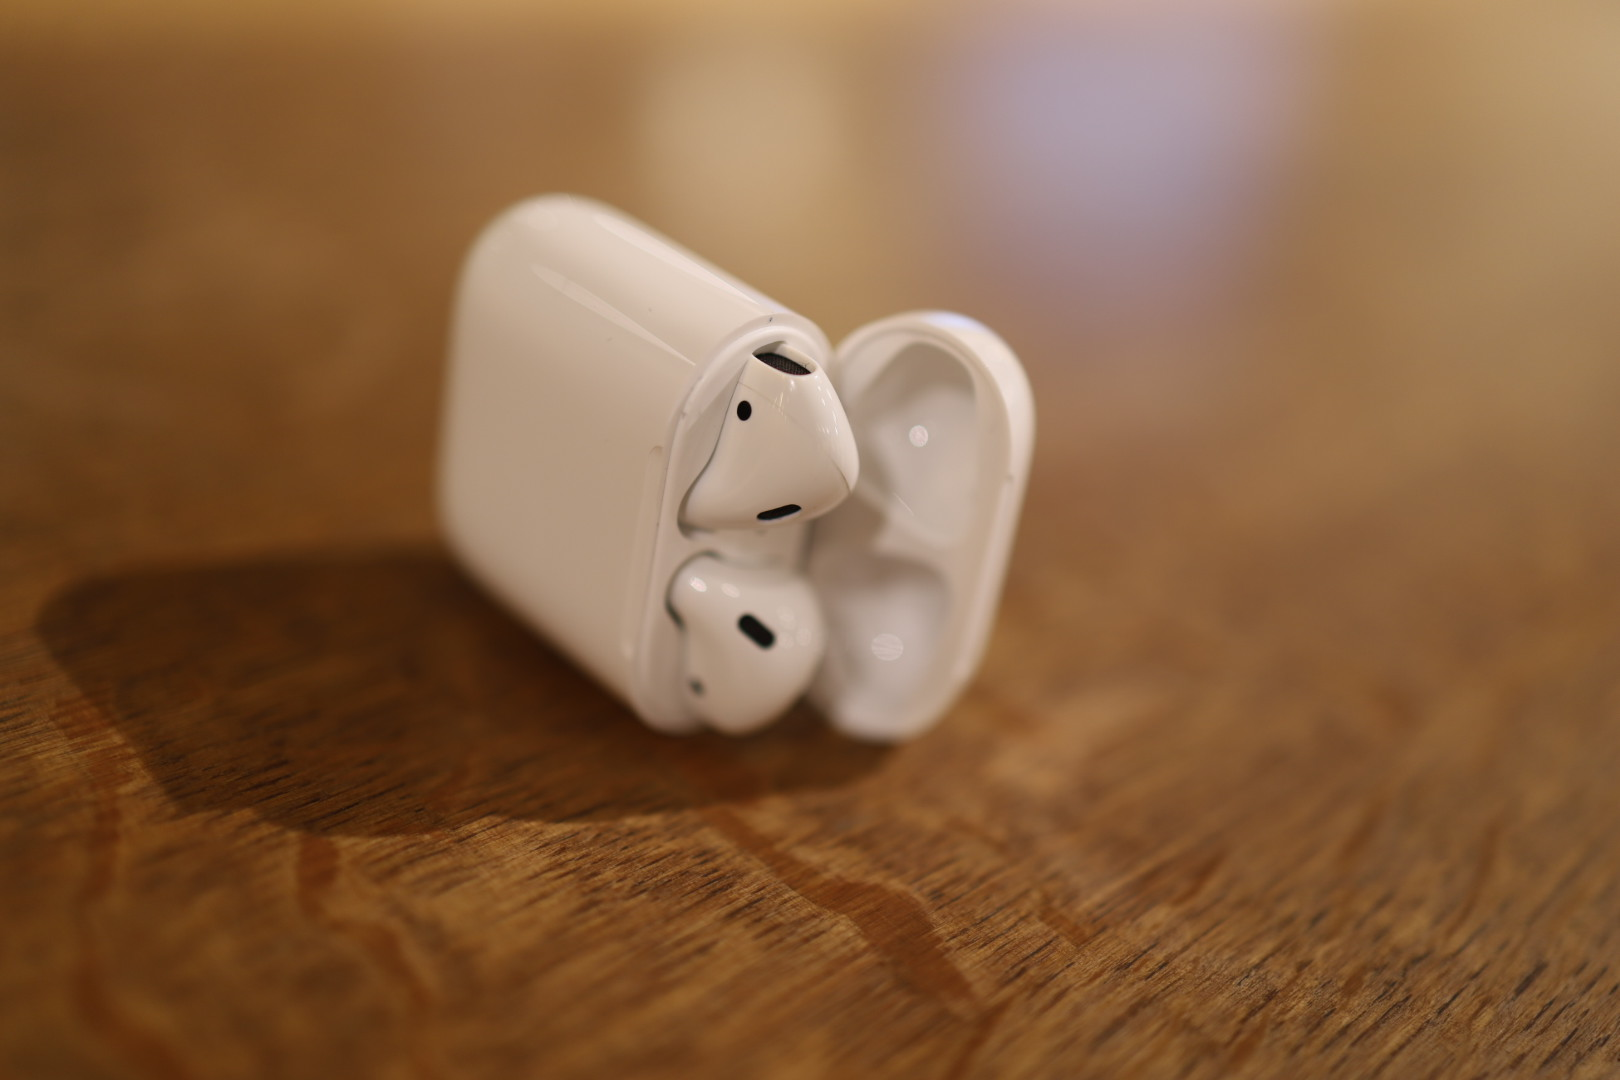 AirPods 2(新型)を購入レビュー。音が身近になる感覚。